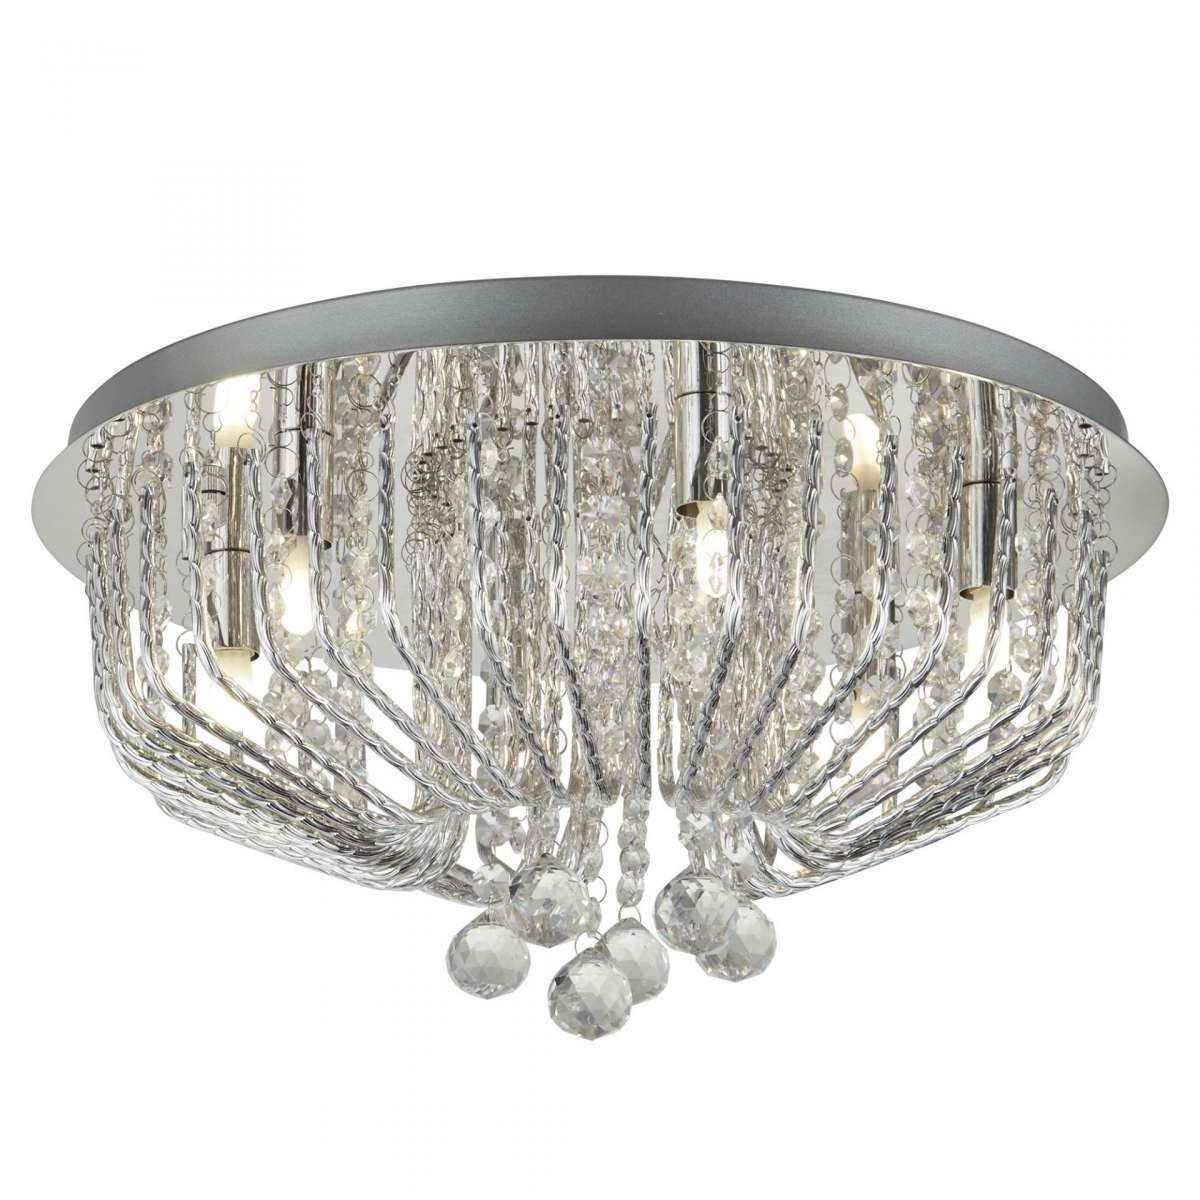 Searchlight 7786-6CC Mela 6 Light Ceiling Flush With Crystal Ball Drops